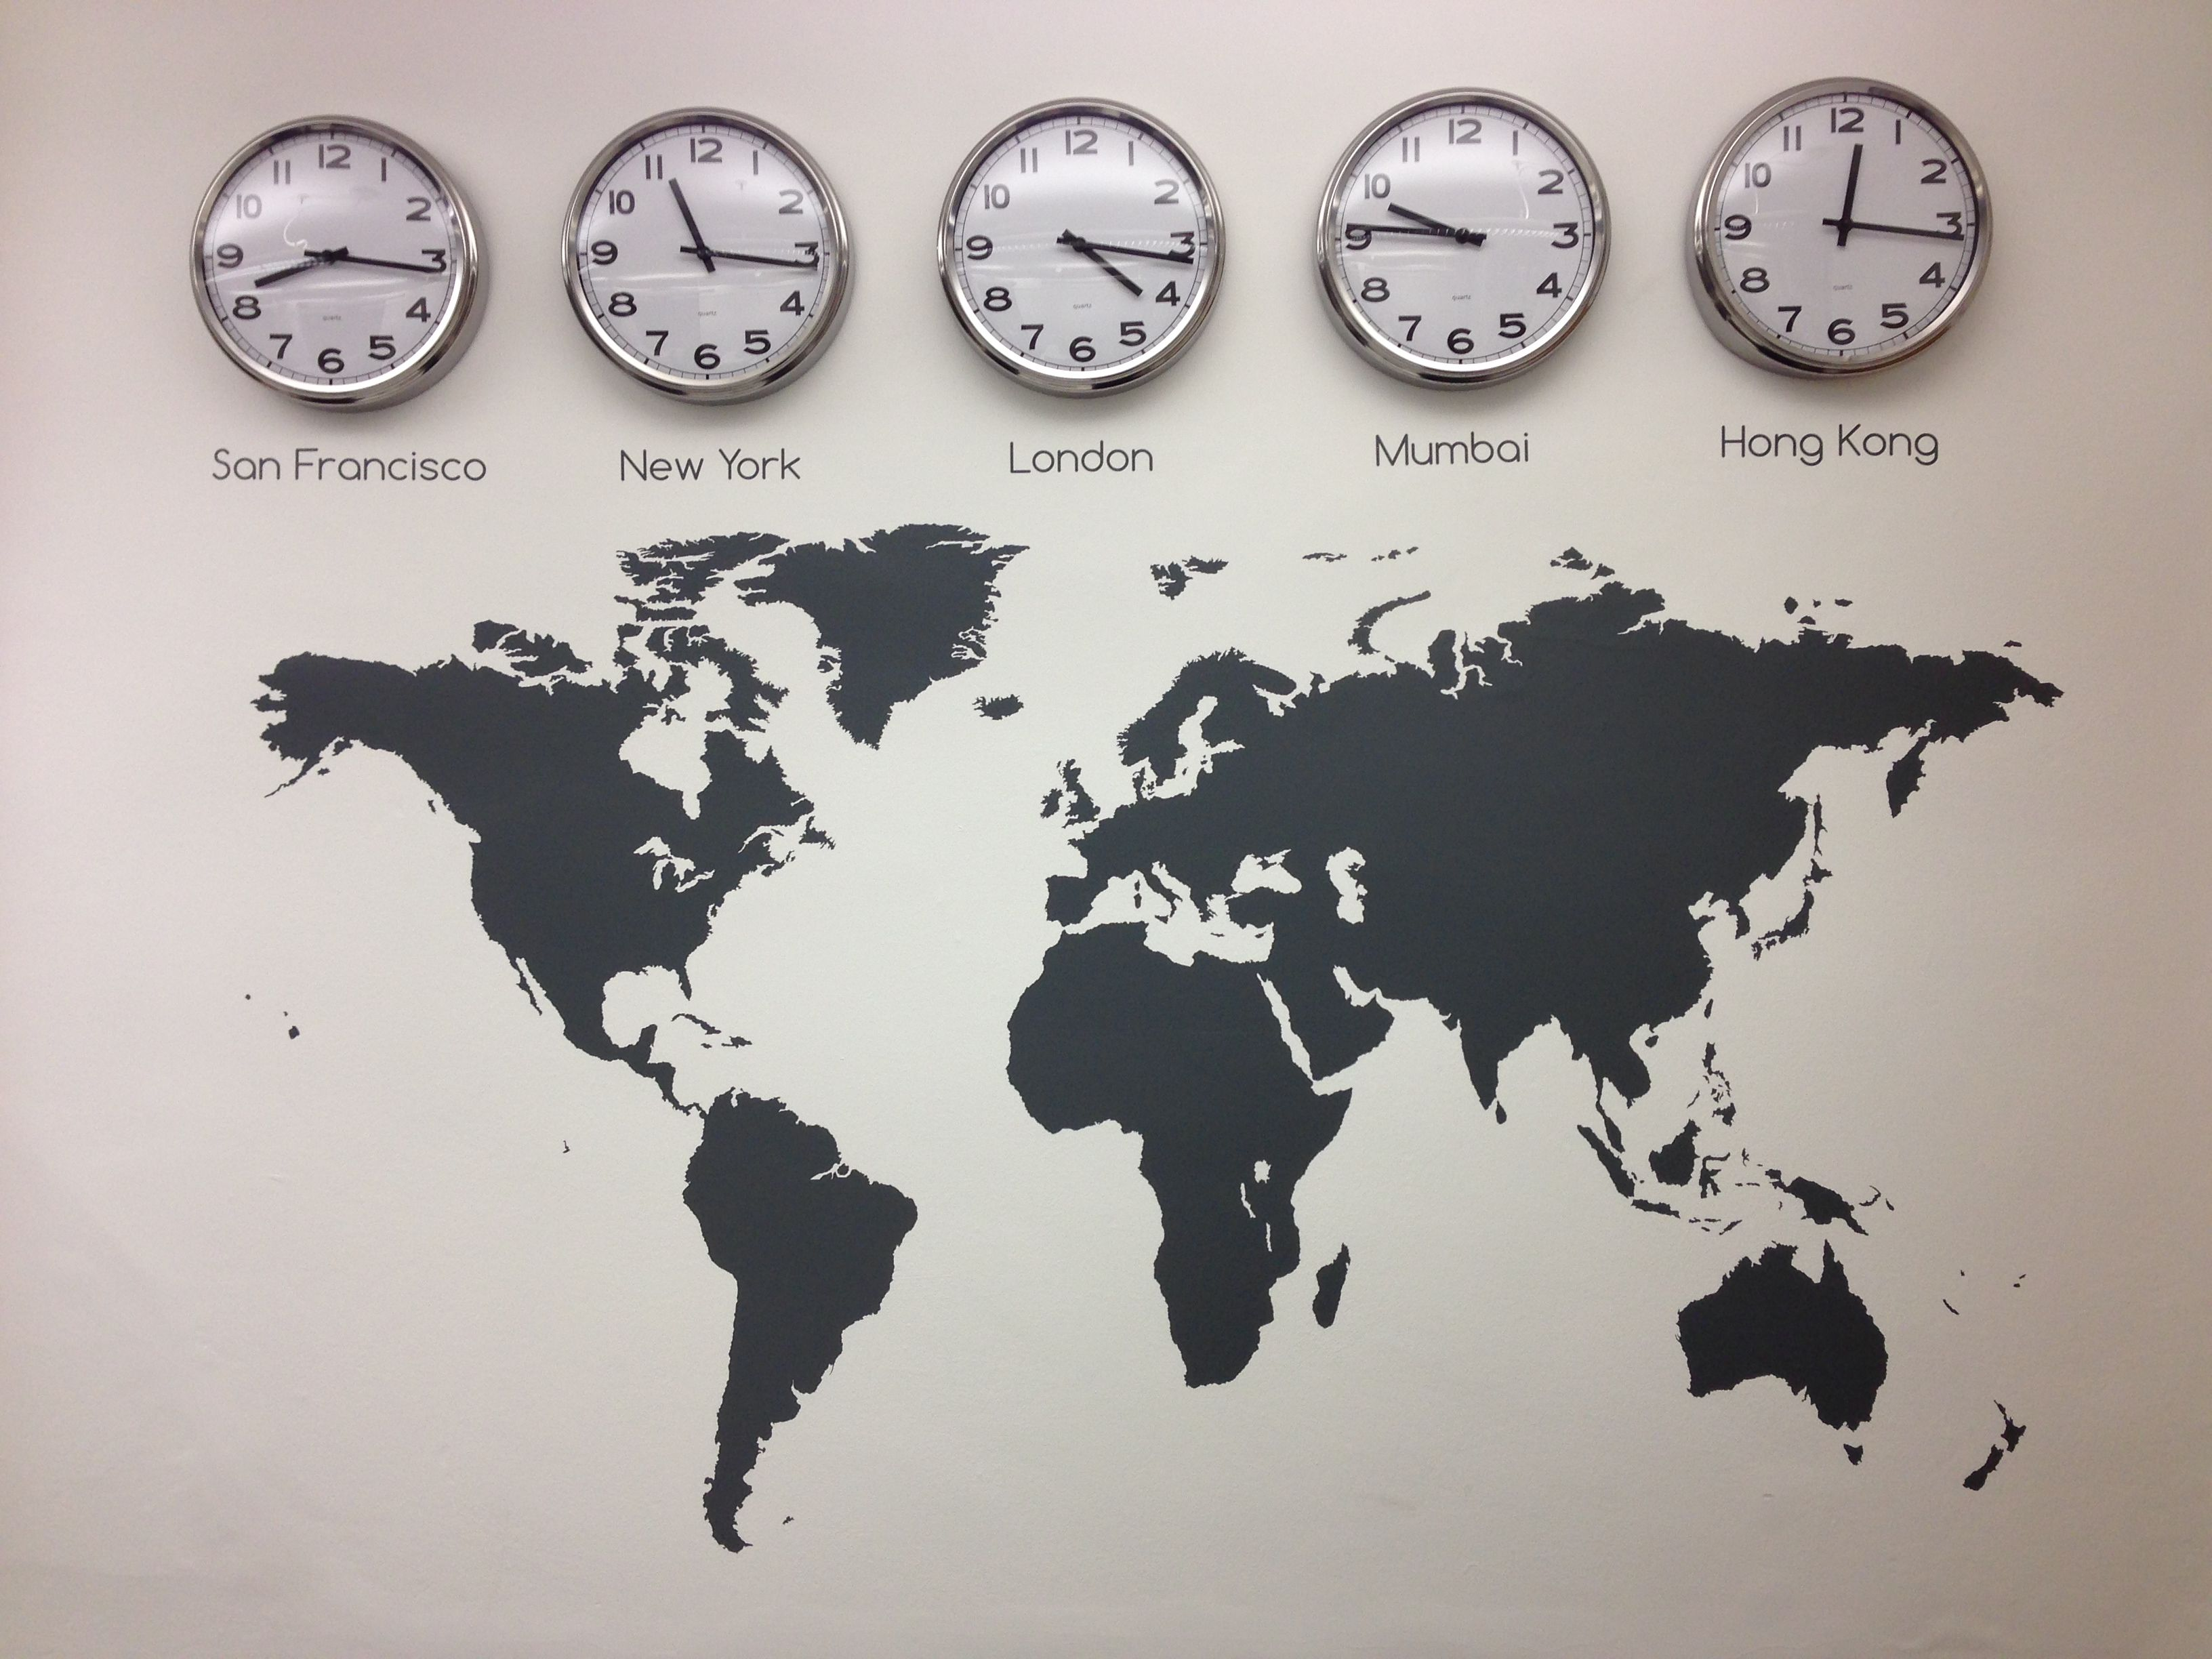 World map vinyl wall sticker pinterest time zones clocks and vinylimpression why not mix our map with some clocks to show different time zone that reflect your business decals and graphics gumiabroncs